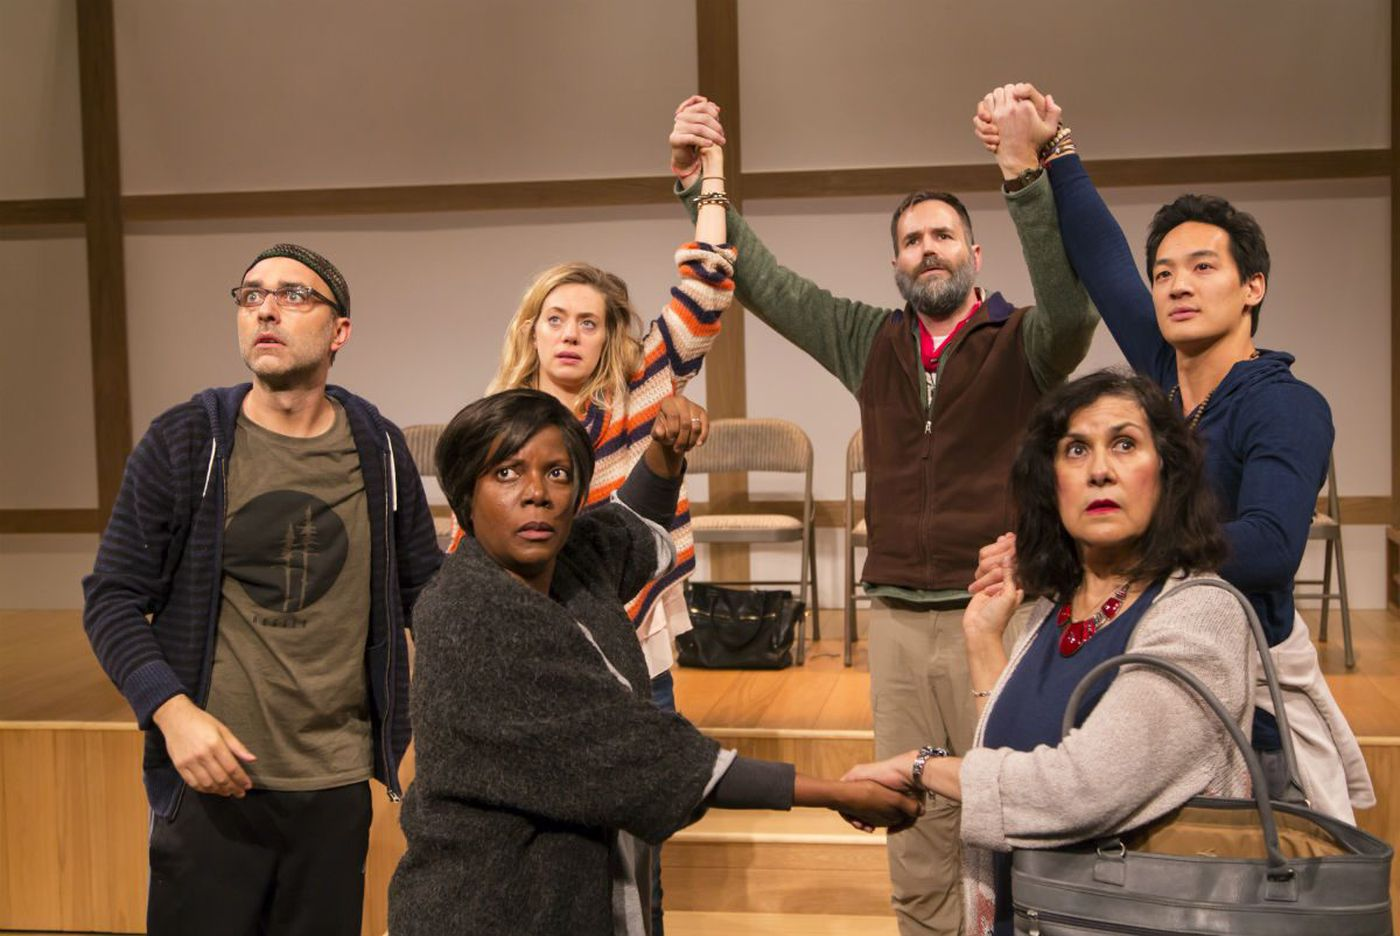 'Small Mouth Sounds' at Philadelphia Theatre Company: Sensitive, artful drama of silence and need